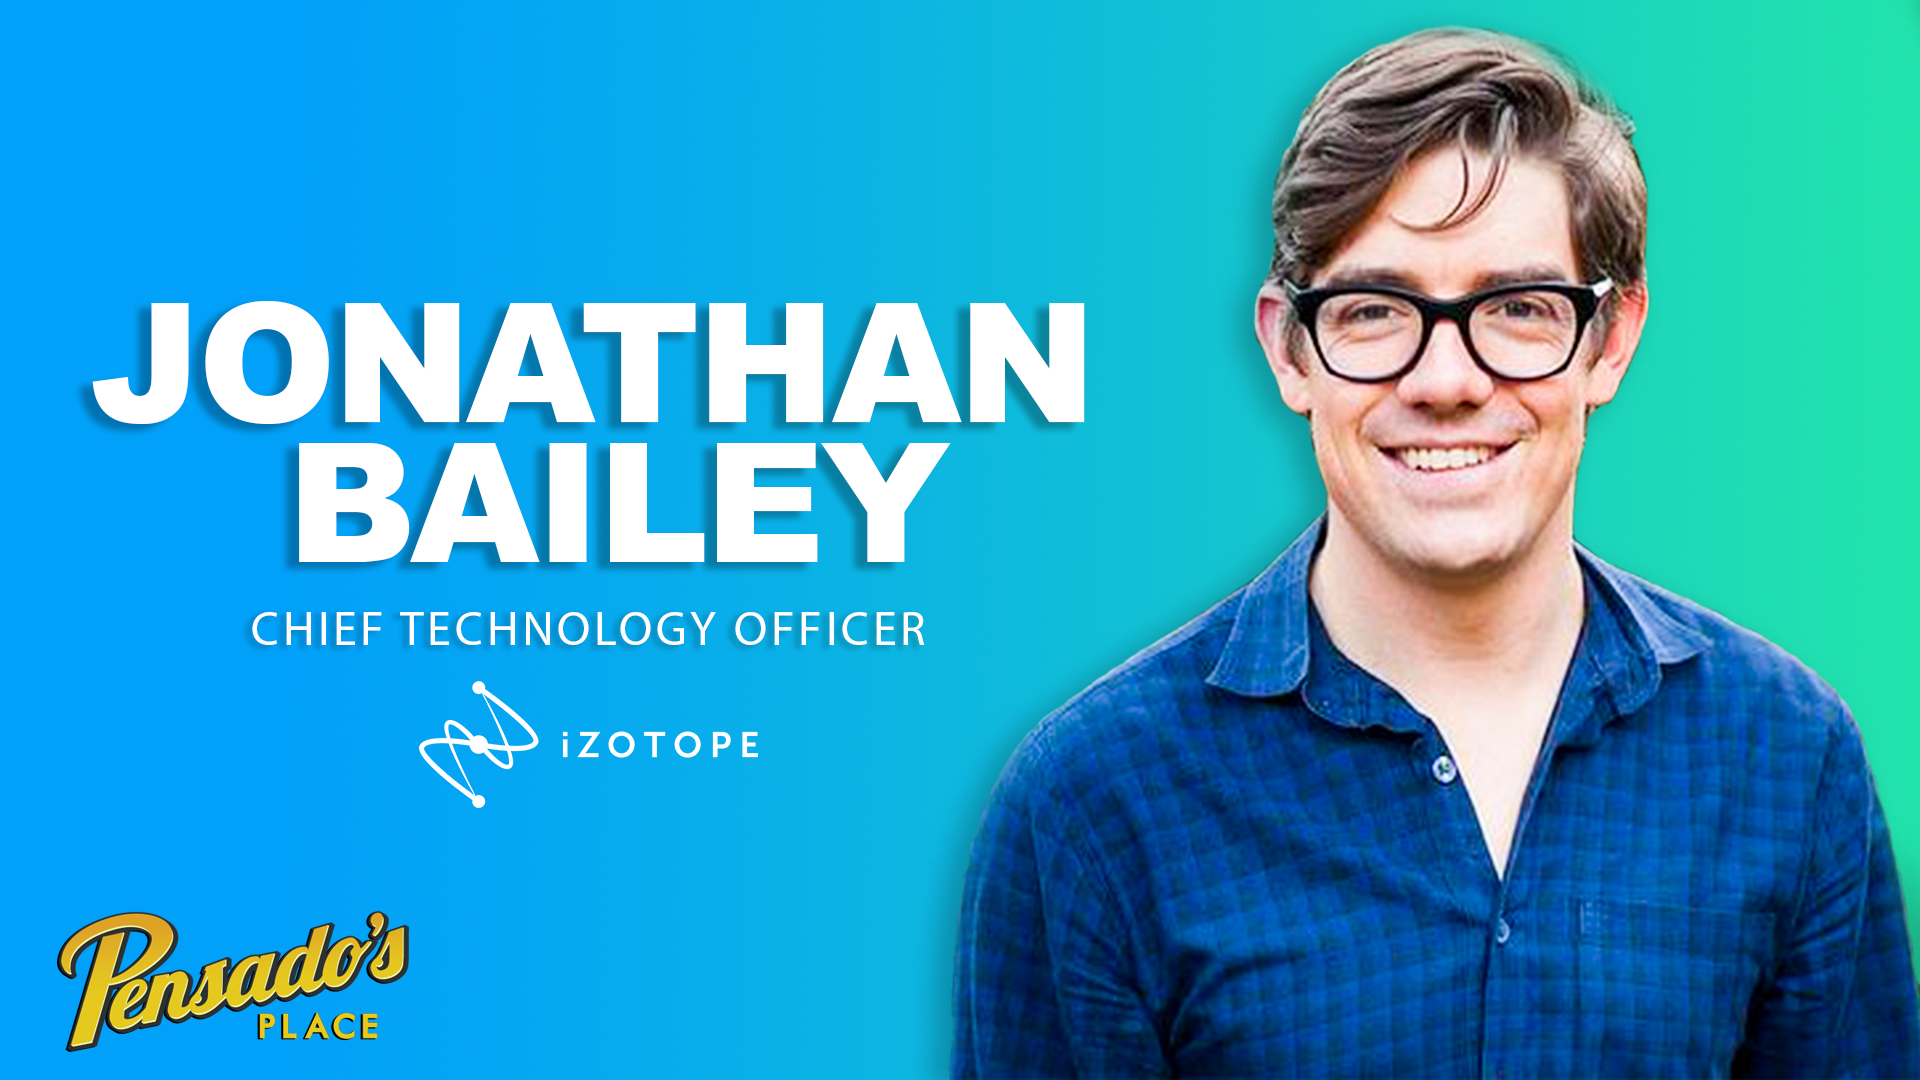 iZotope Chief Technology Officer, Jonathan Bailey